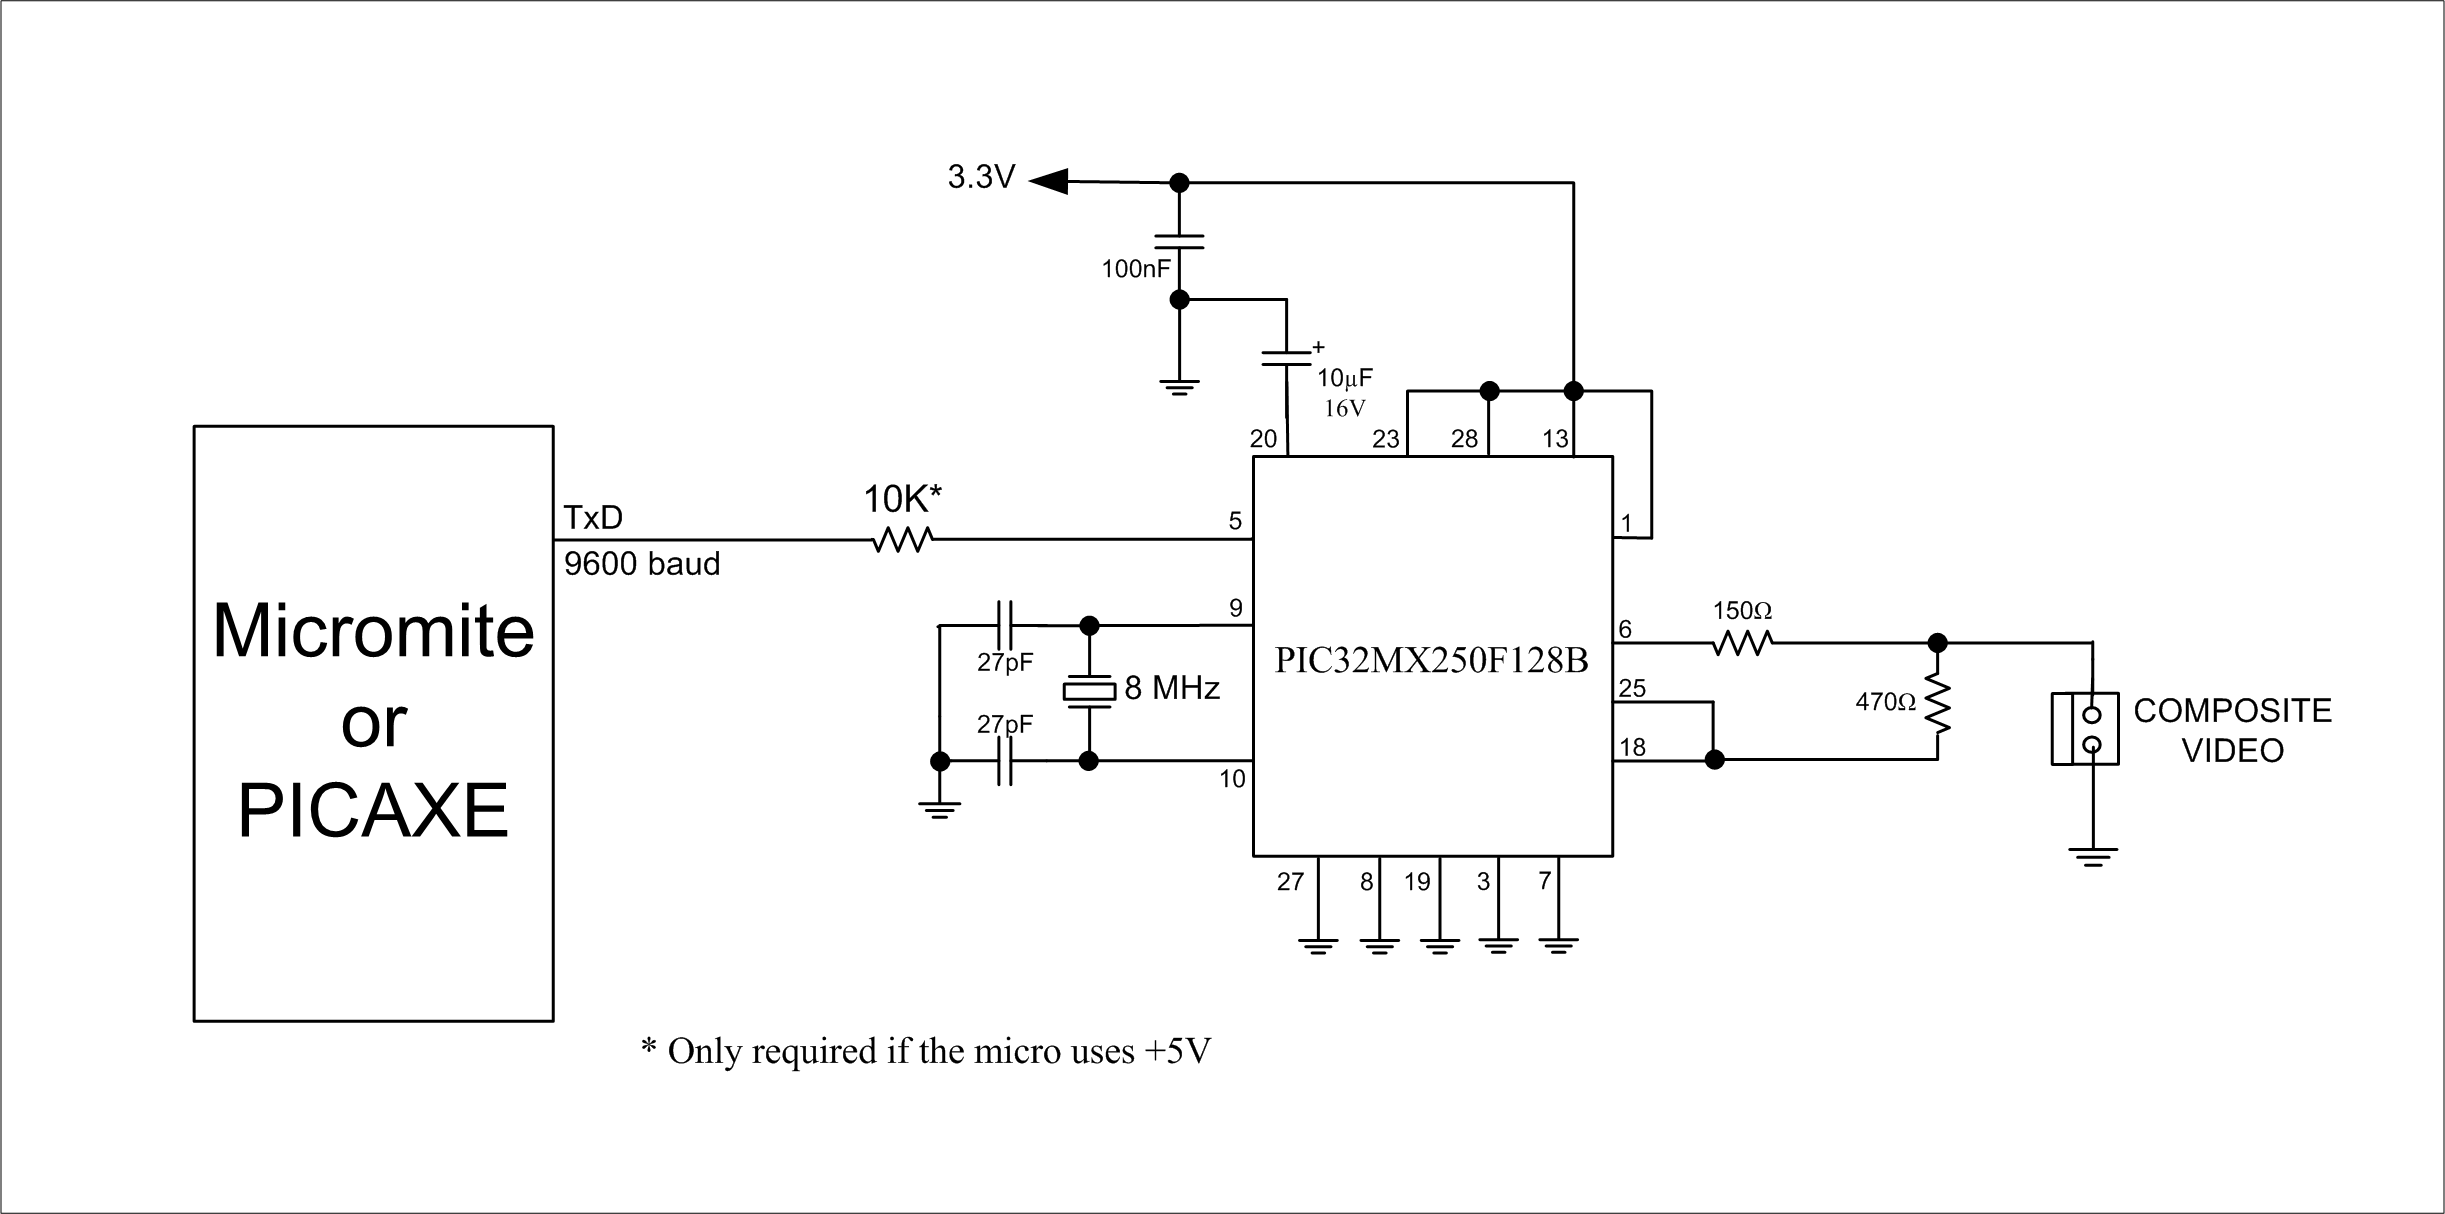 Geoffs Projects Ascii Video Terminal Rs232 Schematic You Can Use The Microcontroller As A Specialised Single Chip Controller For Example Following Circuit Be Used If Just Want To Add